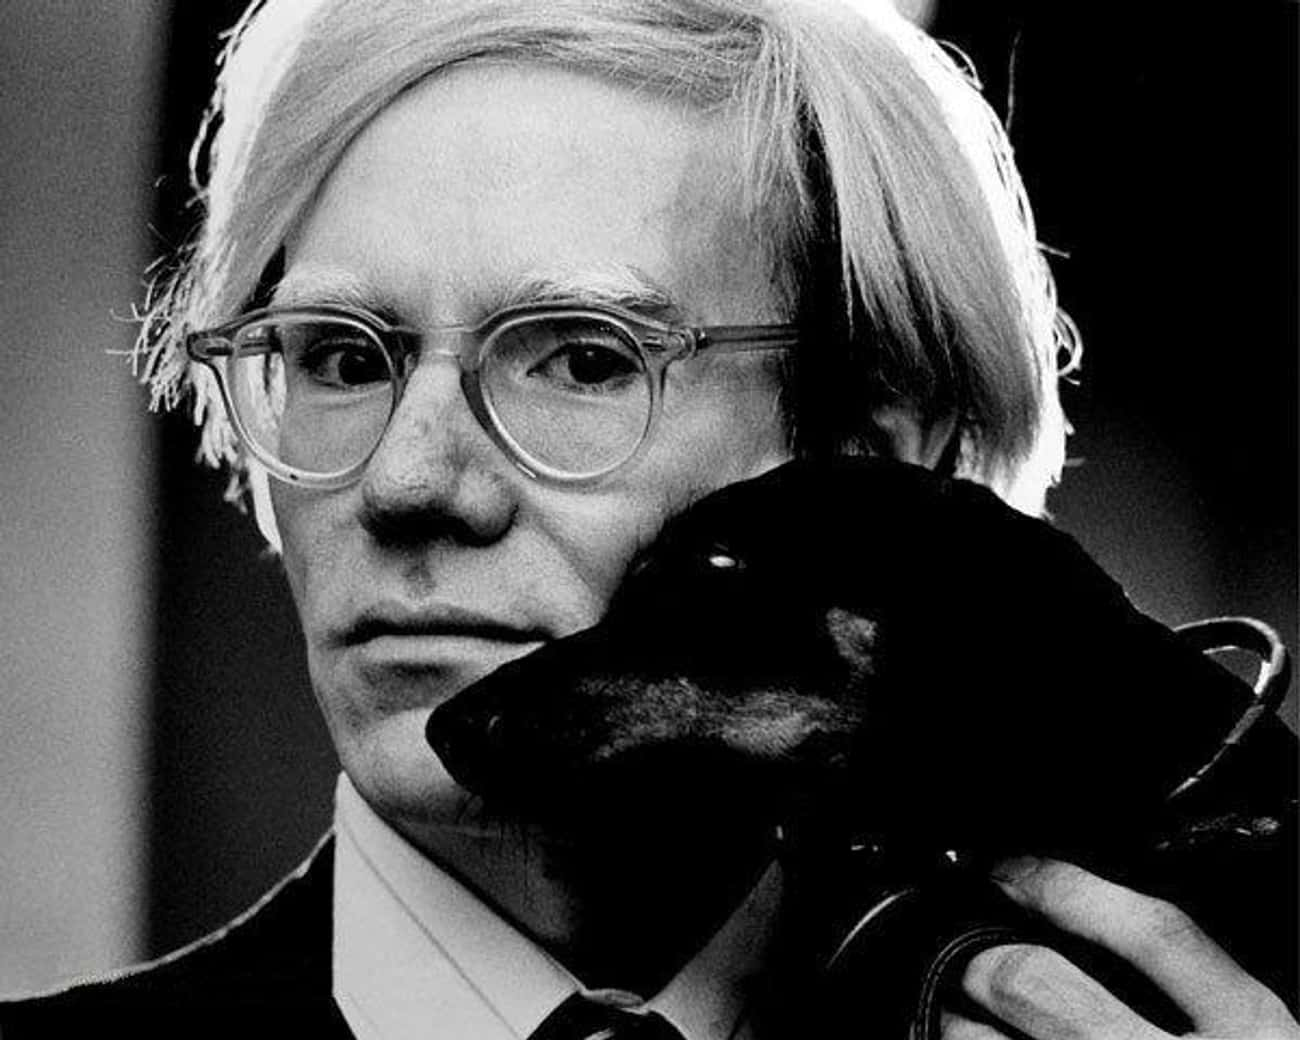 Warhol Wore Wigs Because He Wa is listed (or ranked) 1 on the list True Stories About Andy Warhol's Life In The Underground Art World